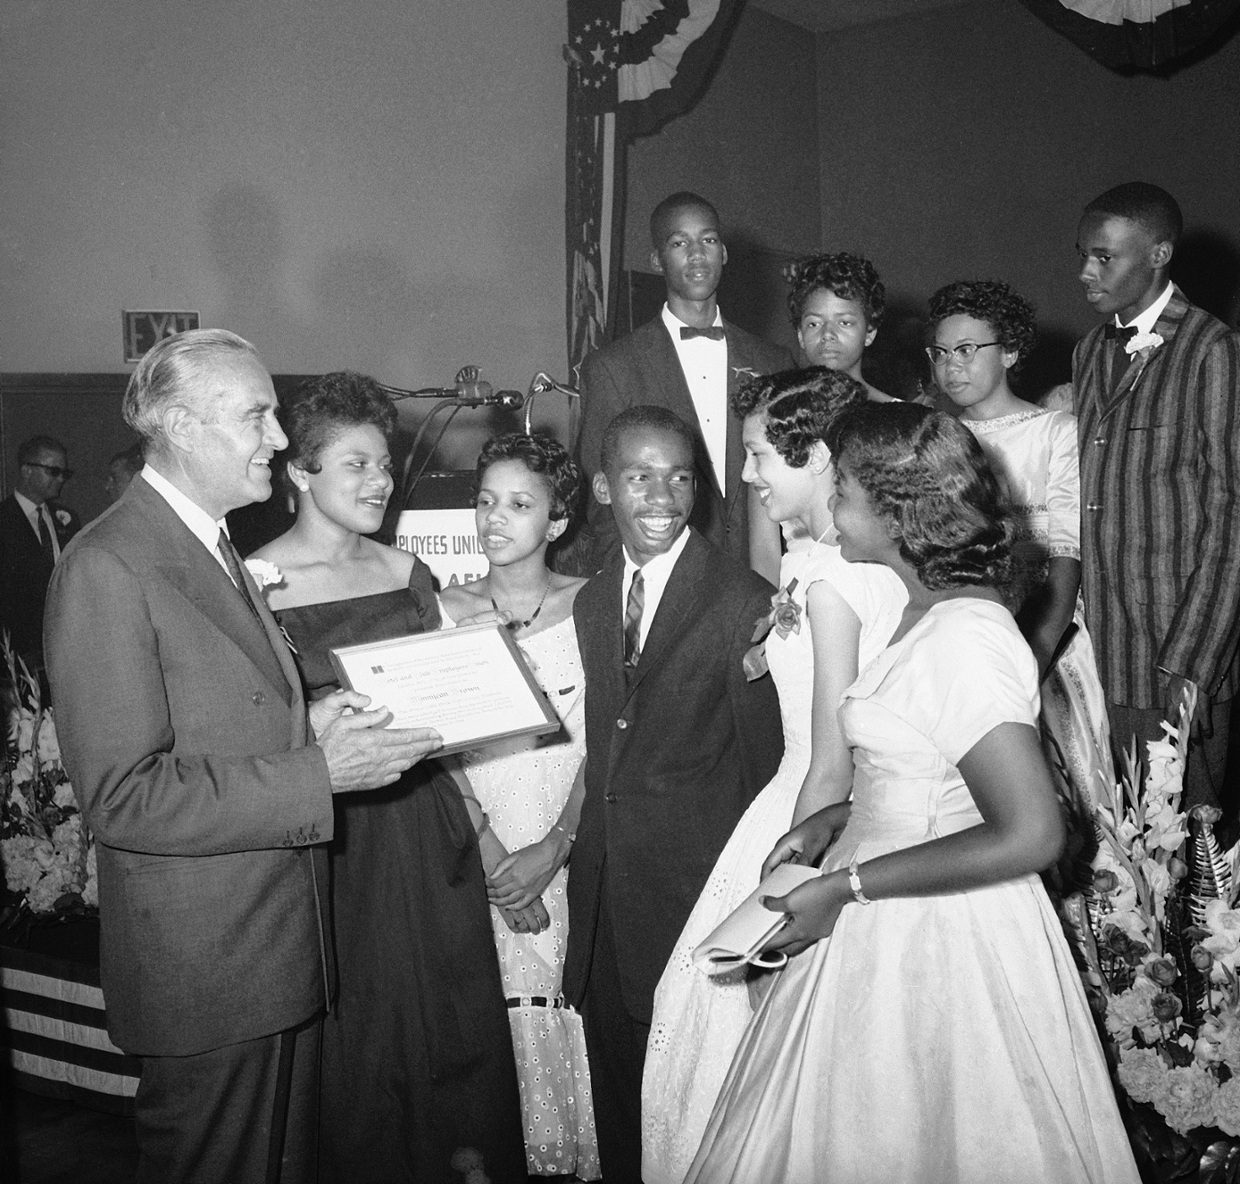 little rock nine The little rock nine was a group of black students from little rock, ark, who were enrolled in previously whites-only little rock central high school in 1957 after segregation in educational facilities was deemed unconstitutional by the us supreme court.